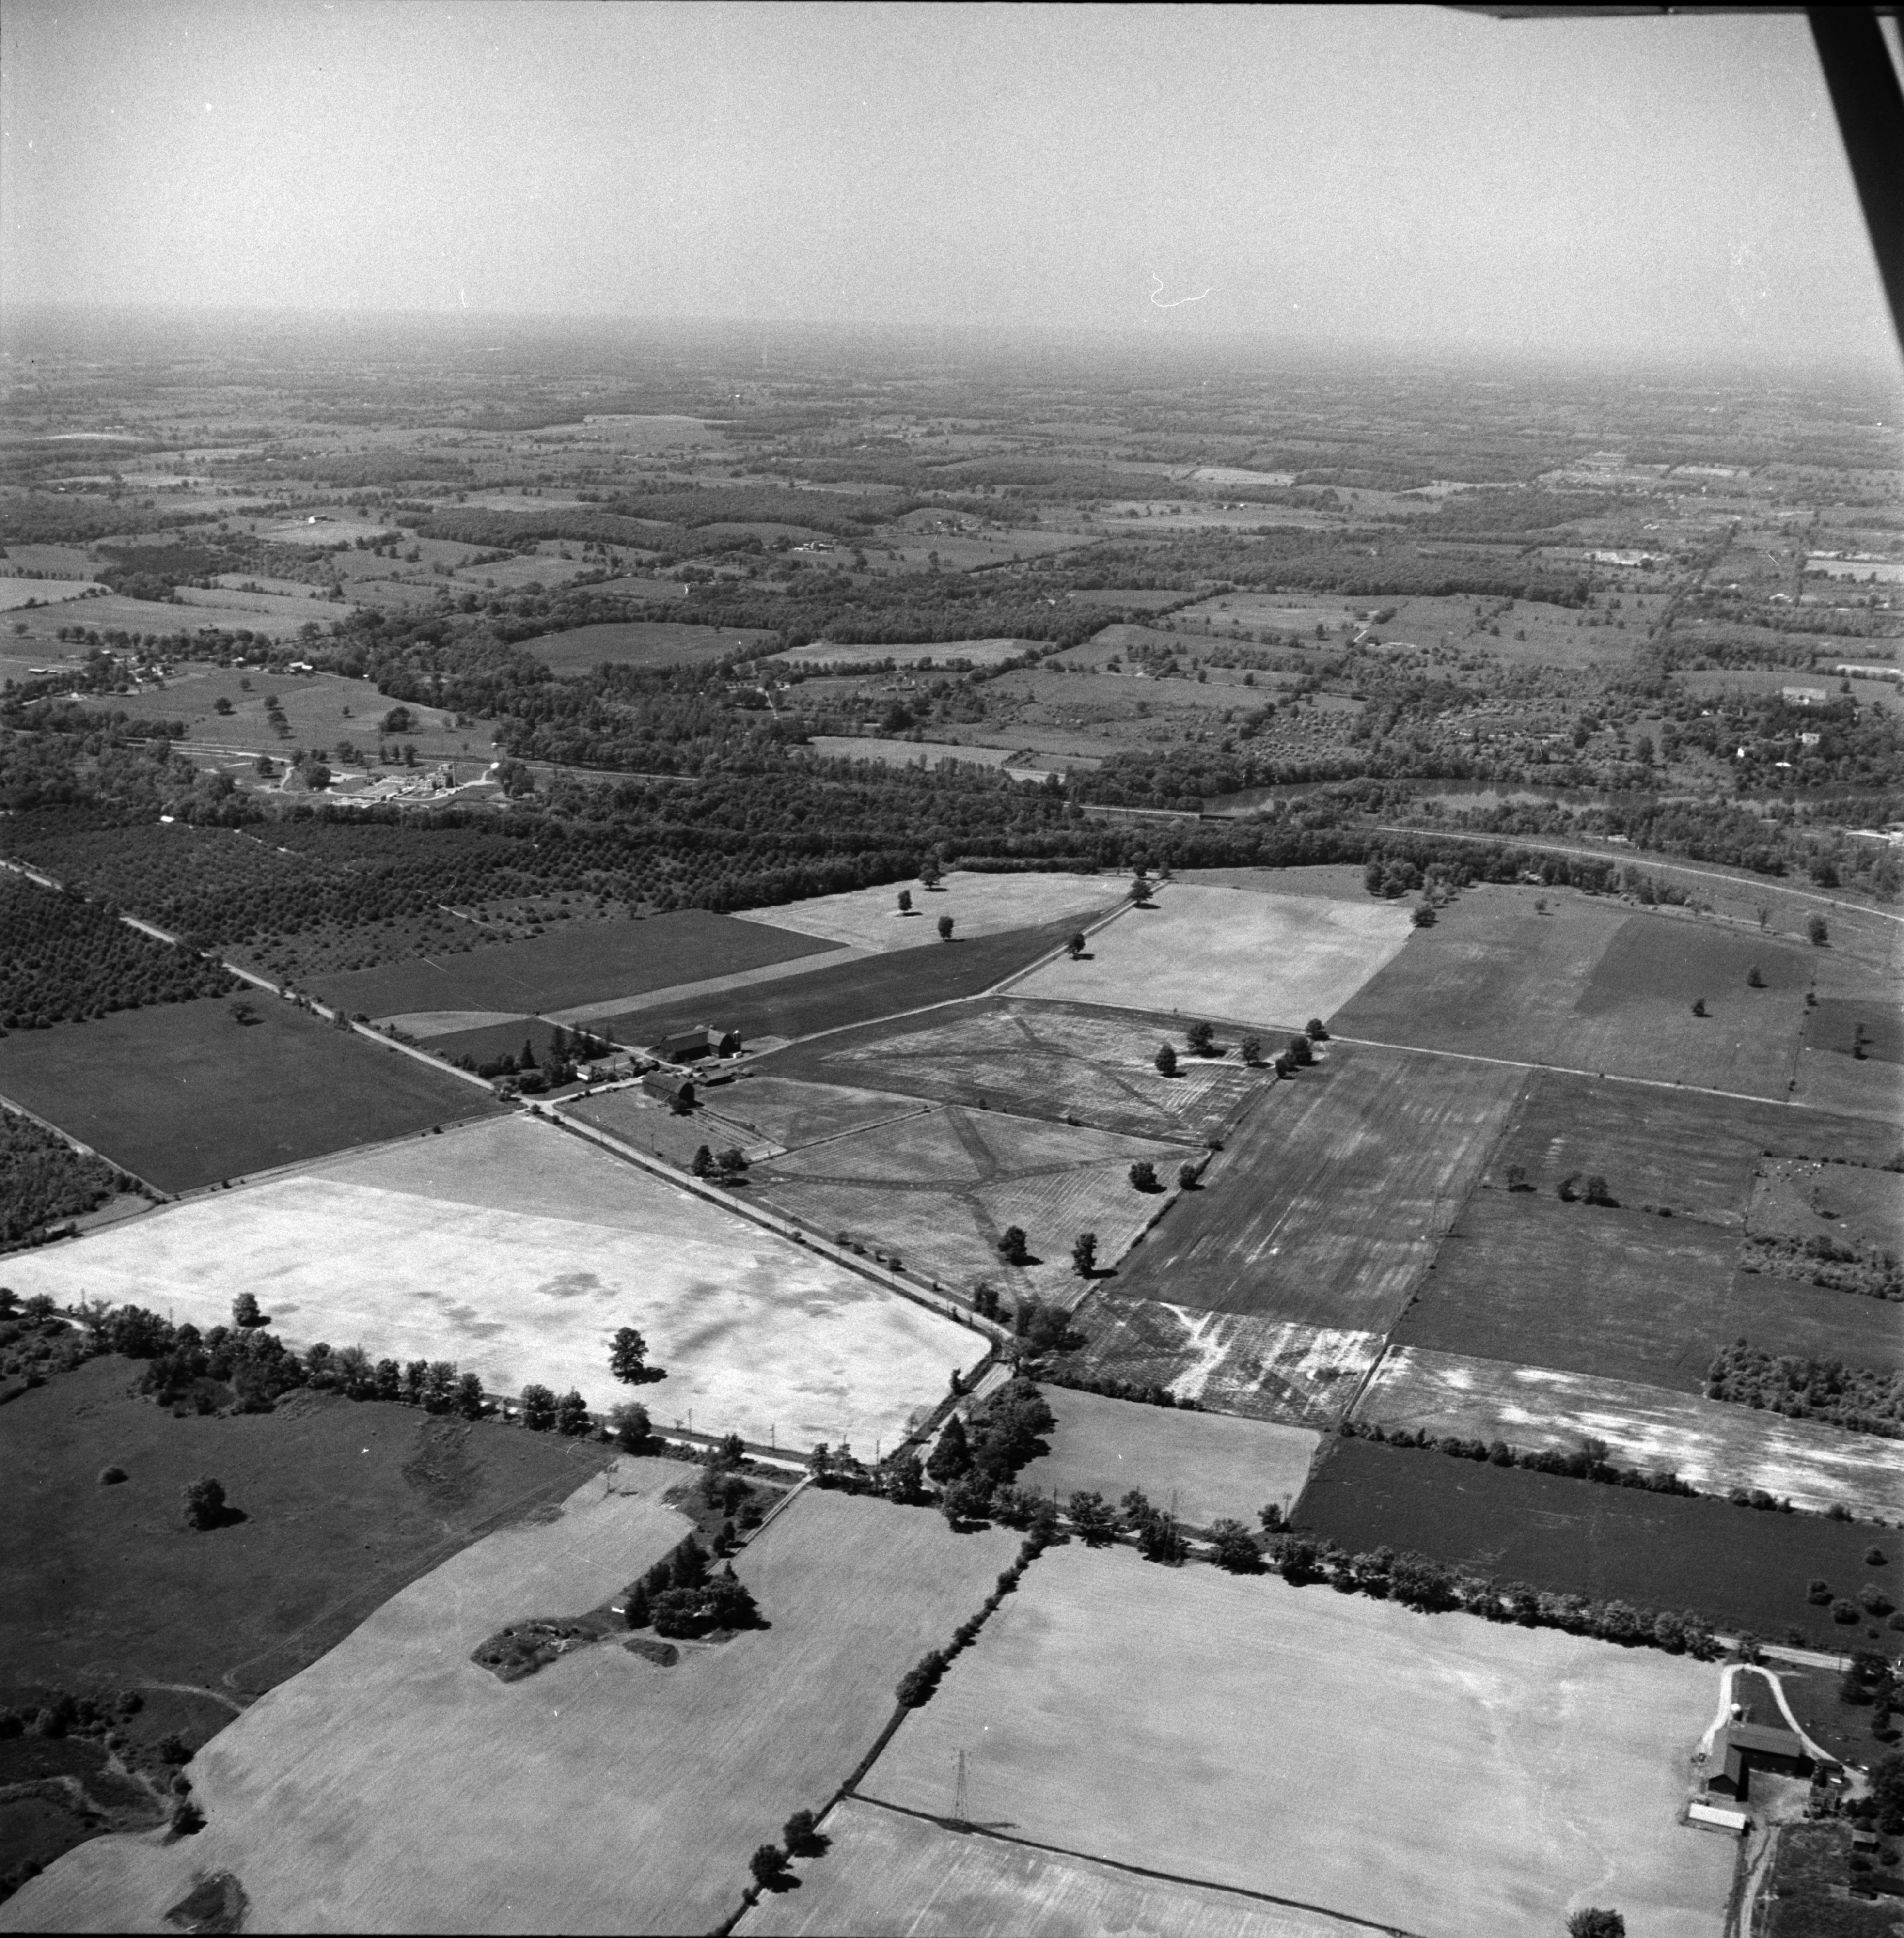 Aerial Photograph of Washtenaw County Farm Land, June 1957 image